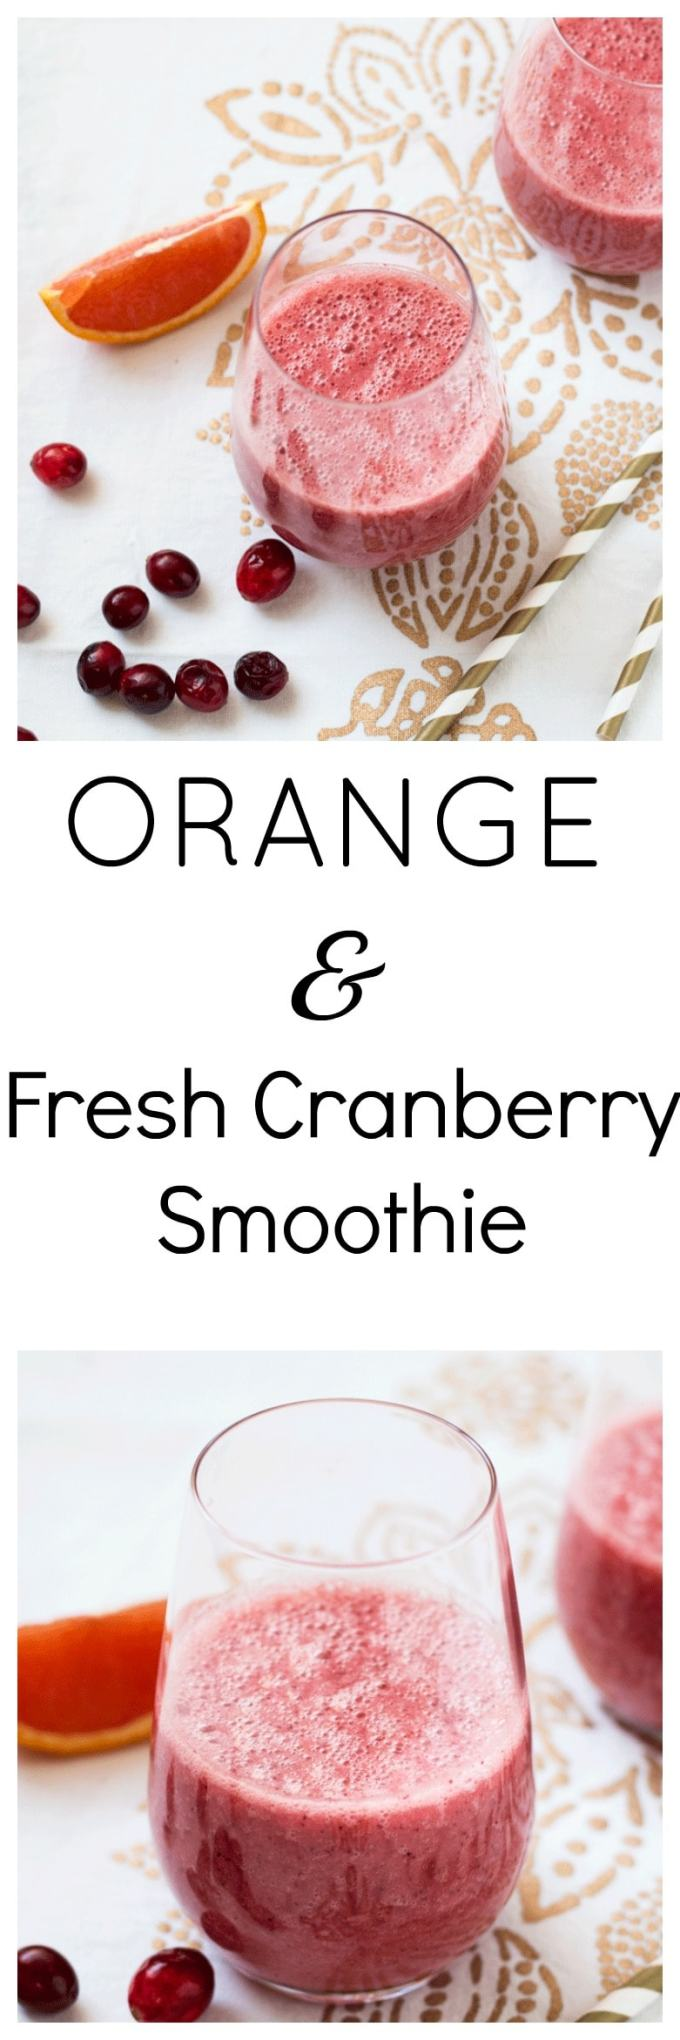 Rejuvenating Orange and Fresh Cranberry Smoothie. A quick, easy and delicious way to rejuvenate and heal your body. Packed with antioxidants